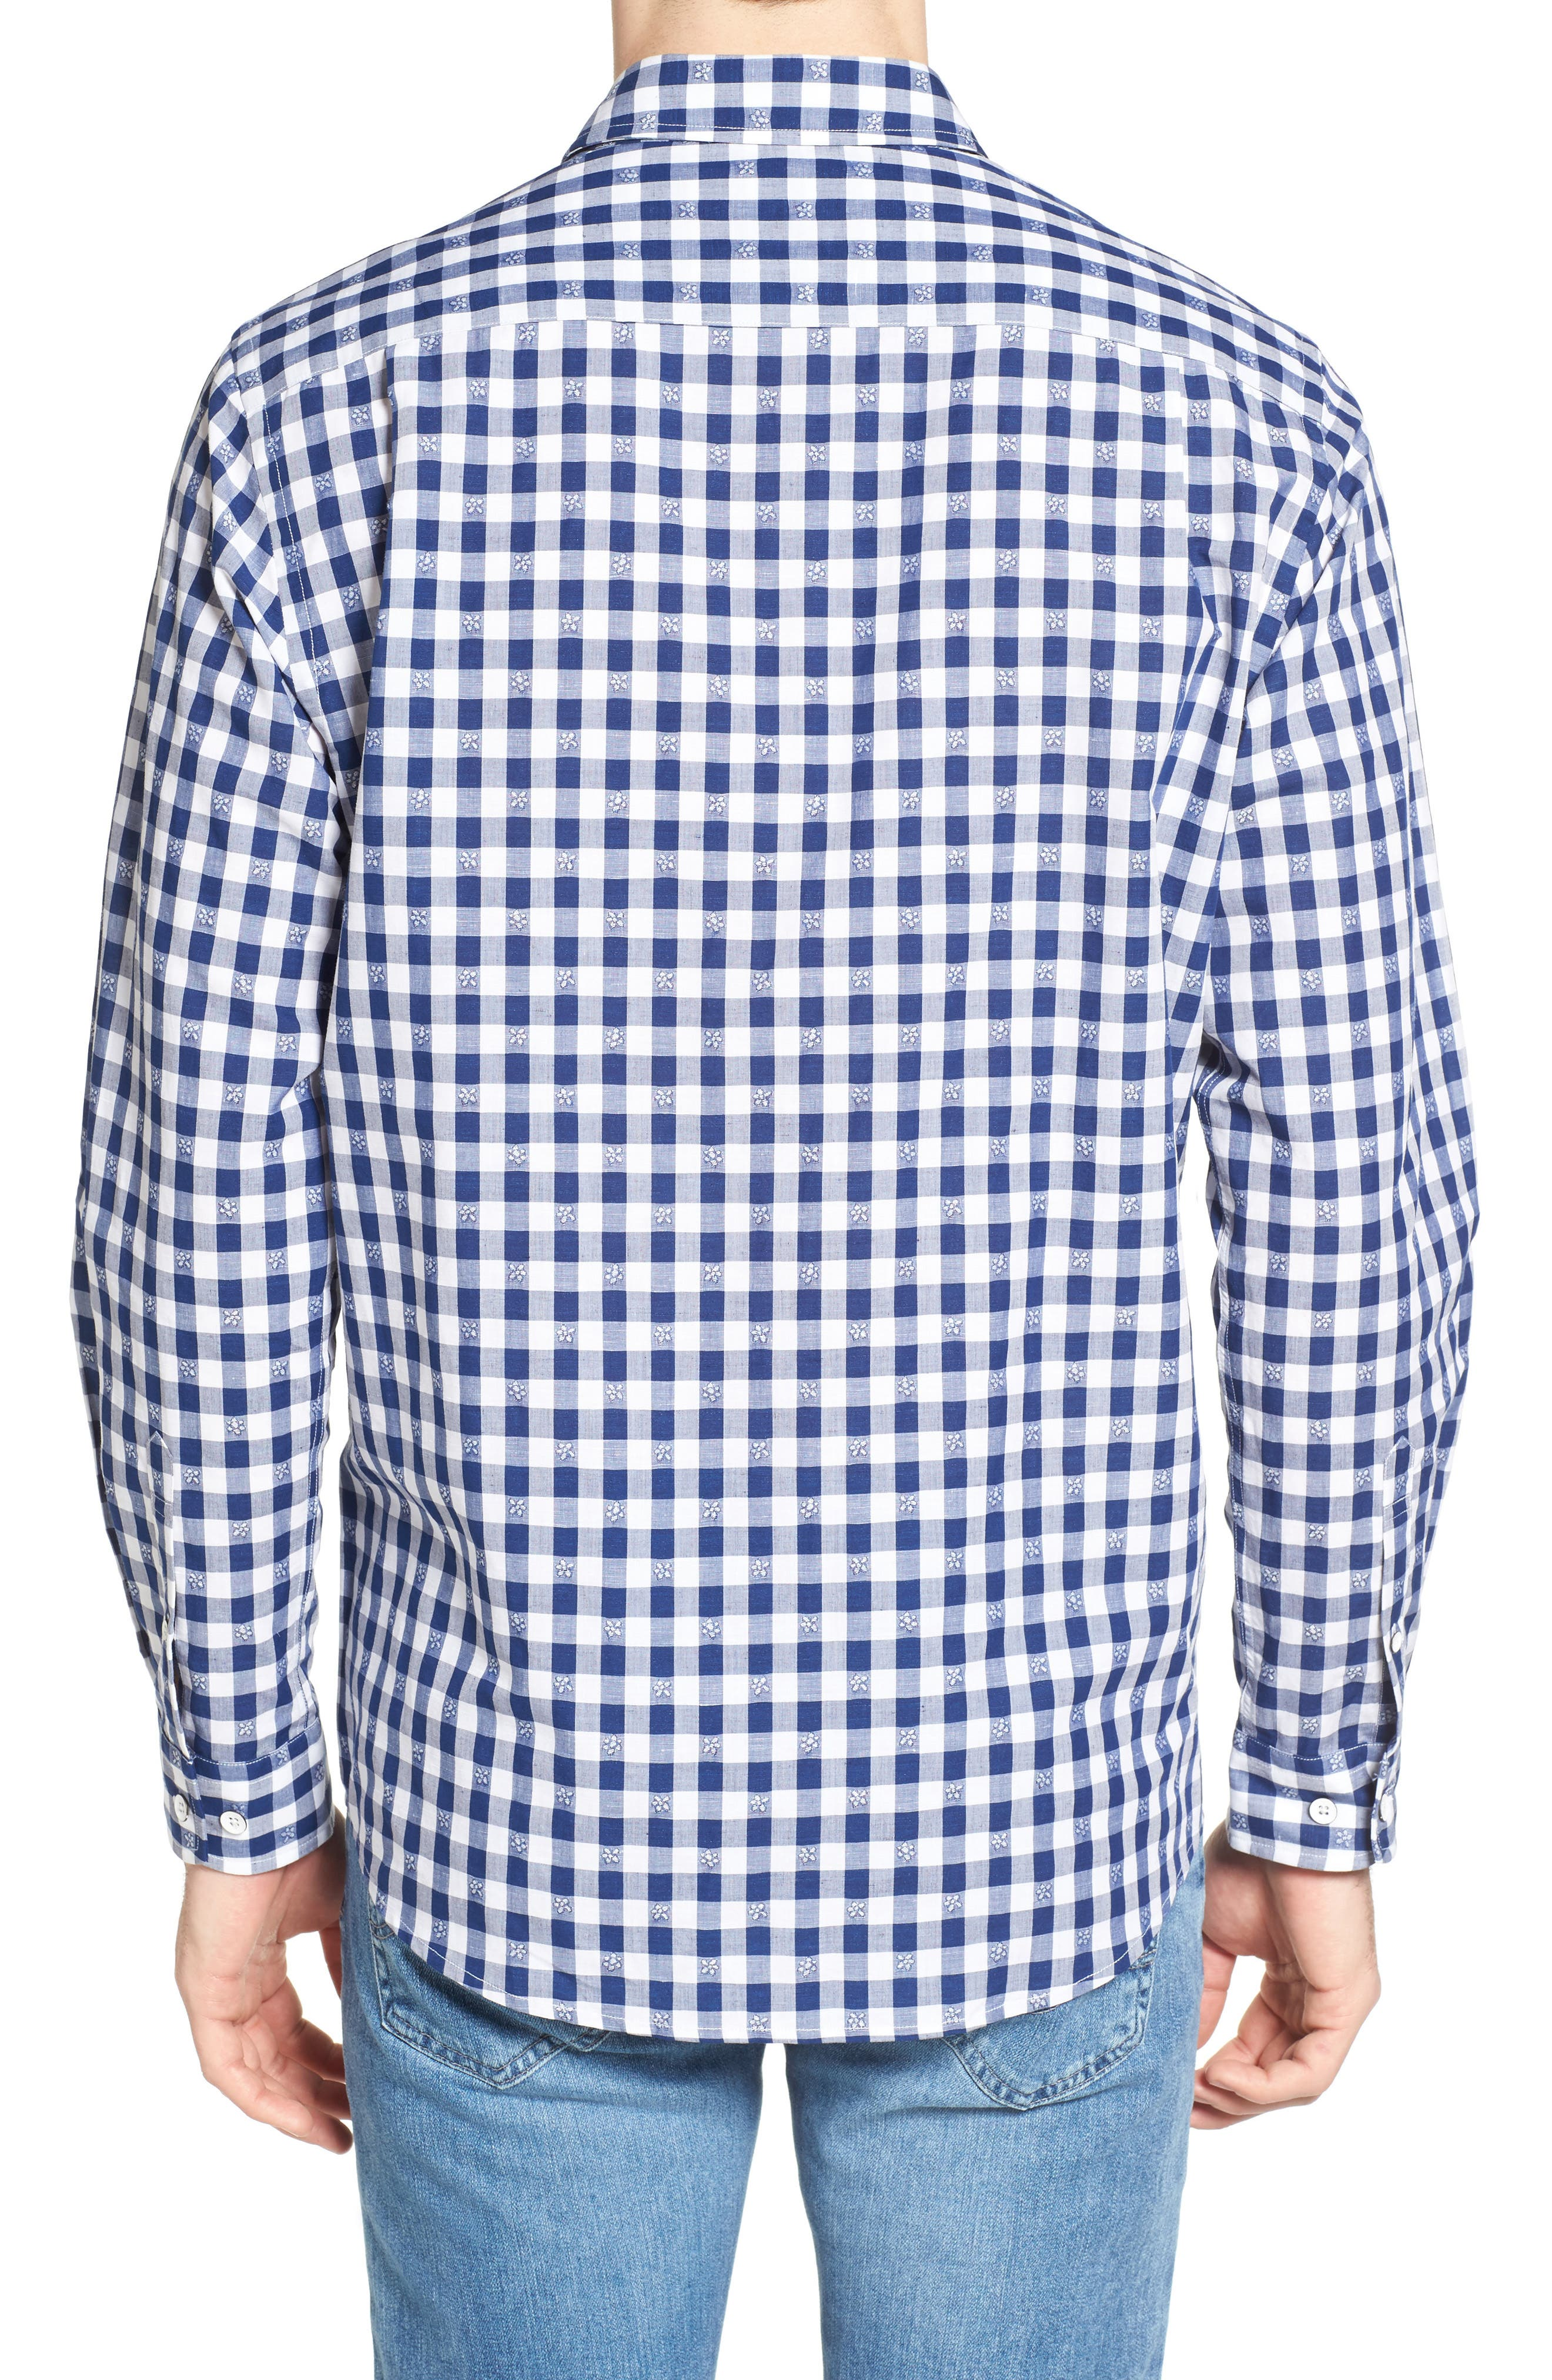 Wallace Floral Check Sport Shirt,                             Alternate thumbnail 2, color,                             423